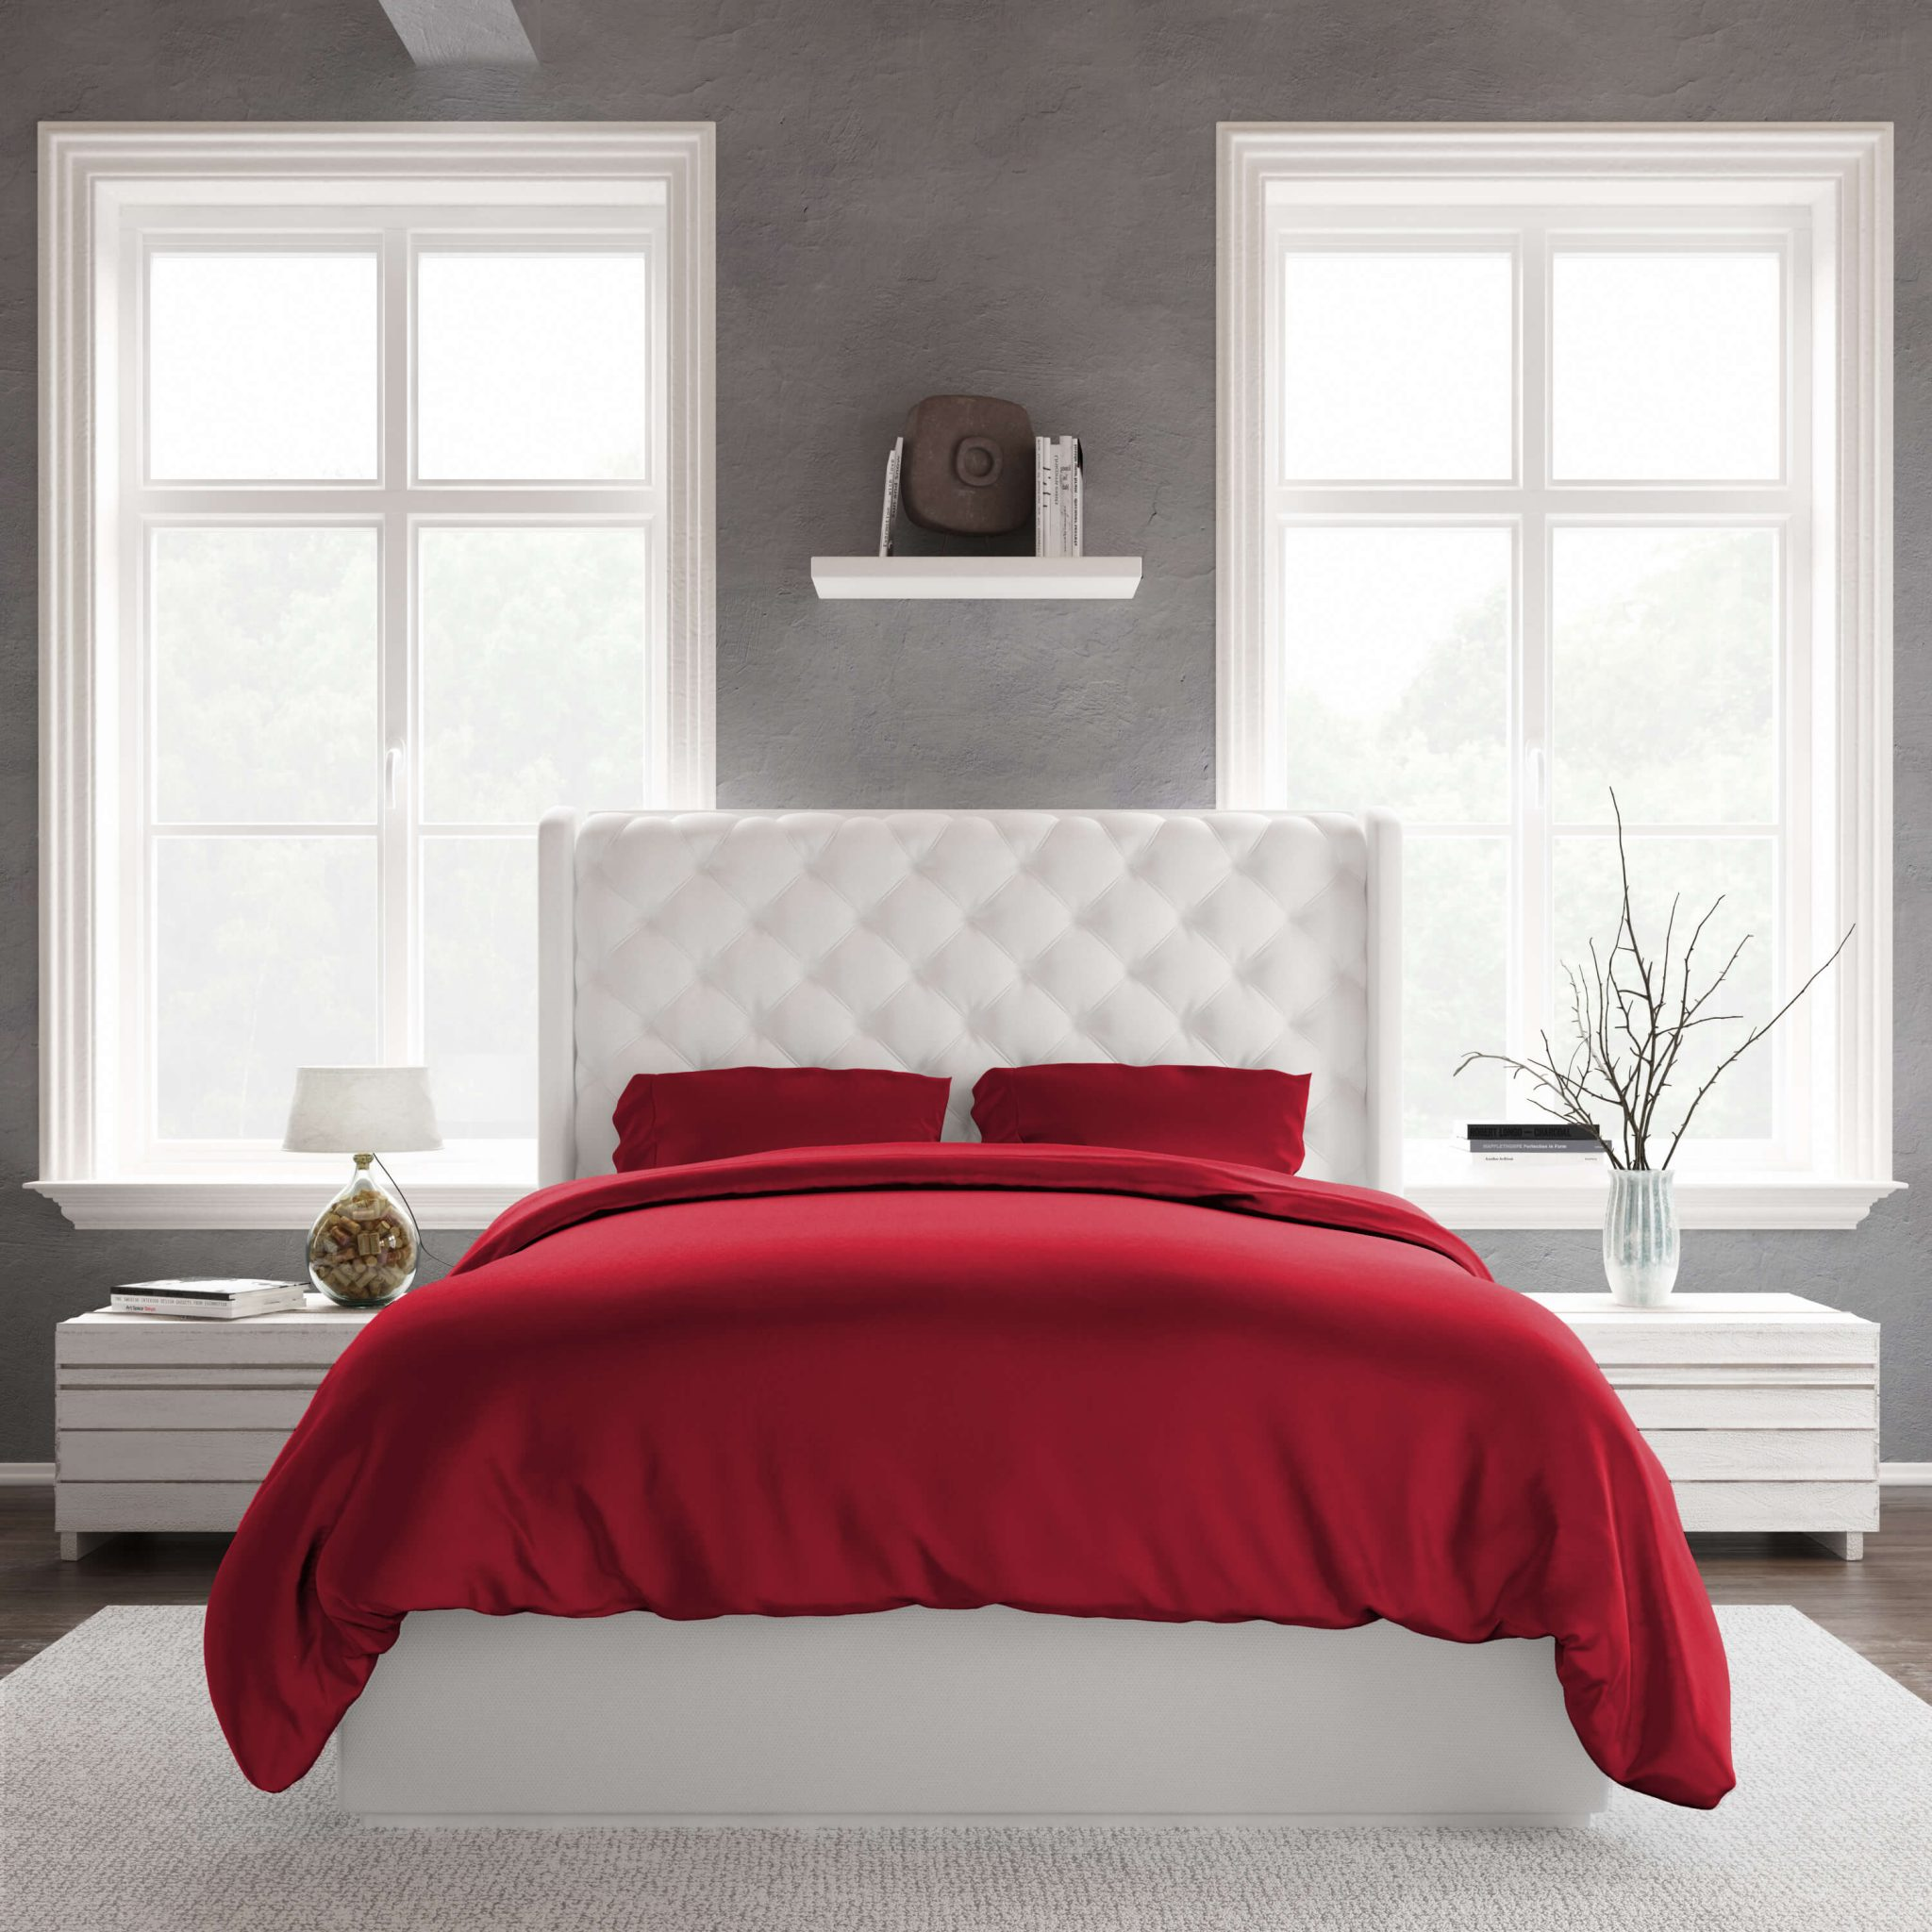 Bamboo Duvet Covers King Size Amp Queen Size Red